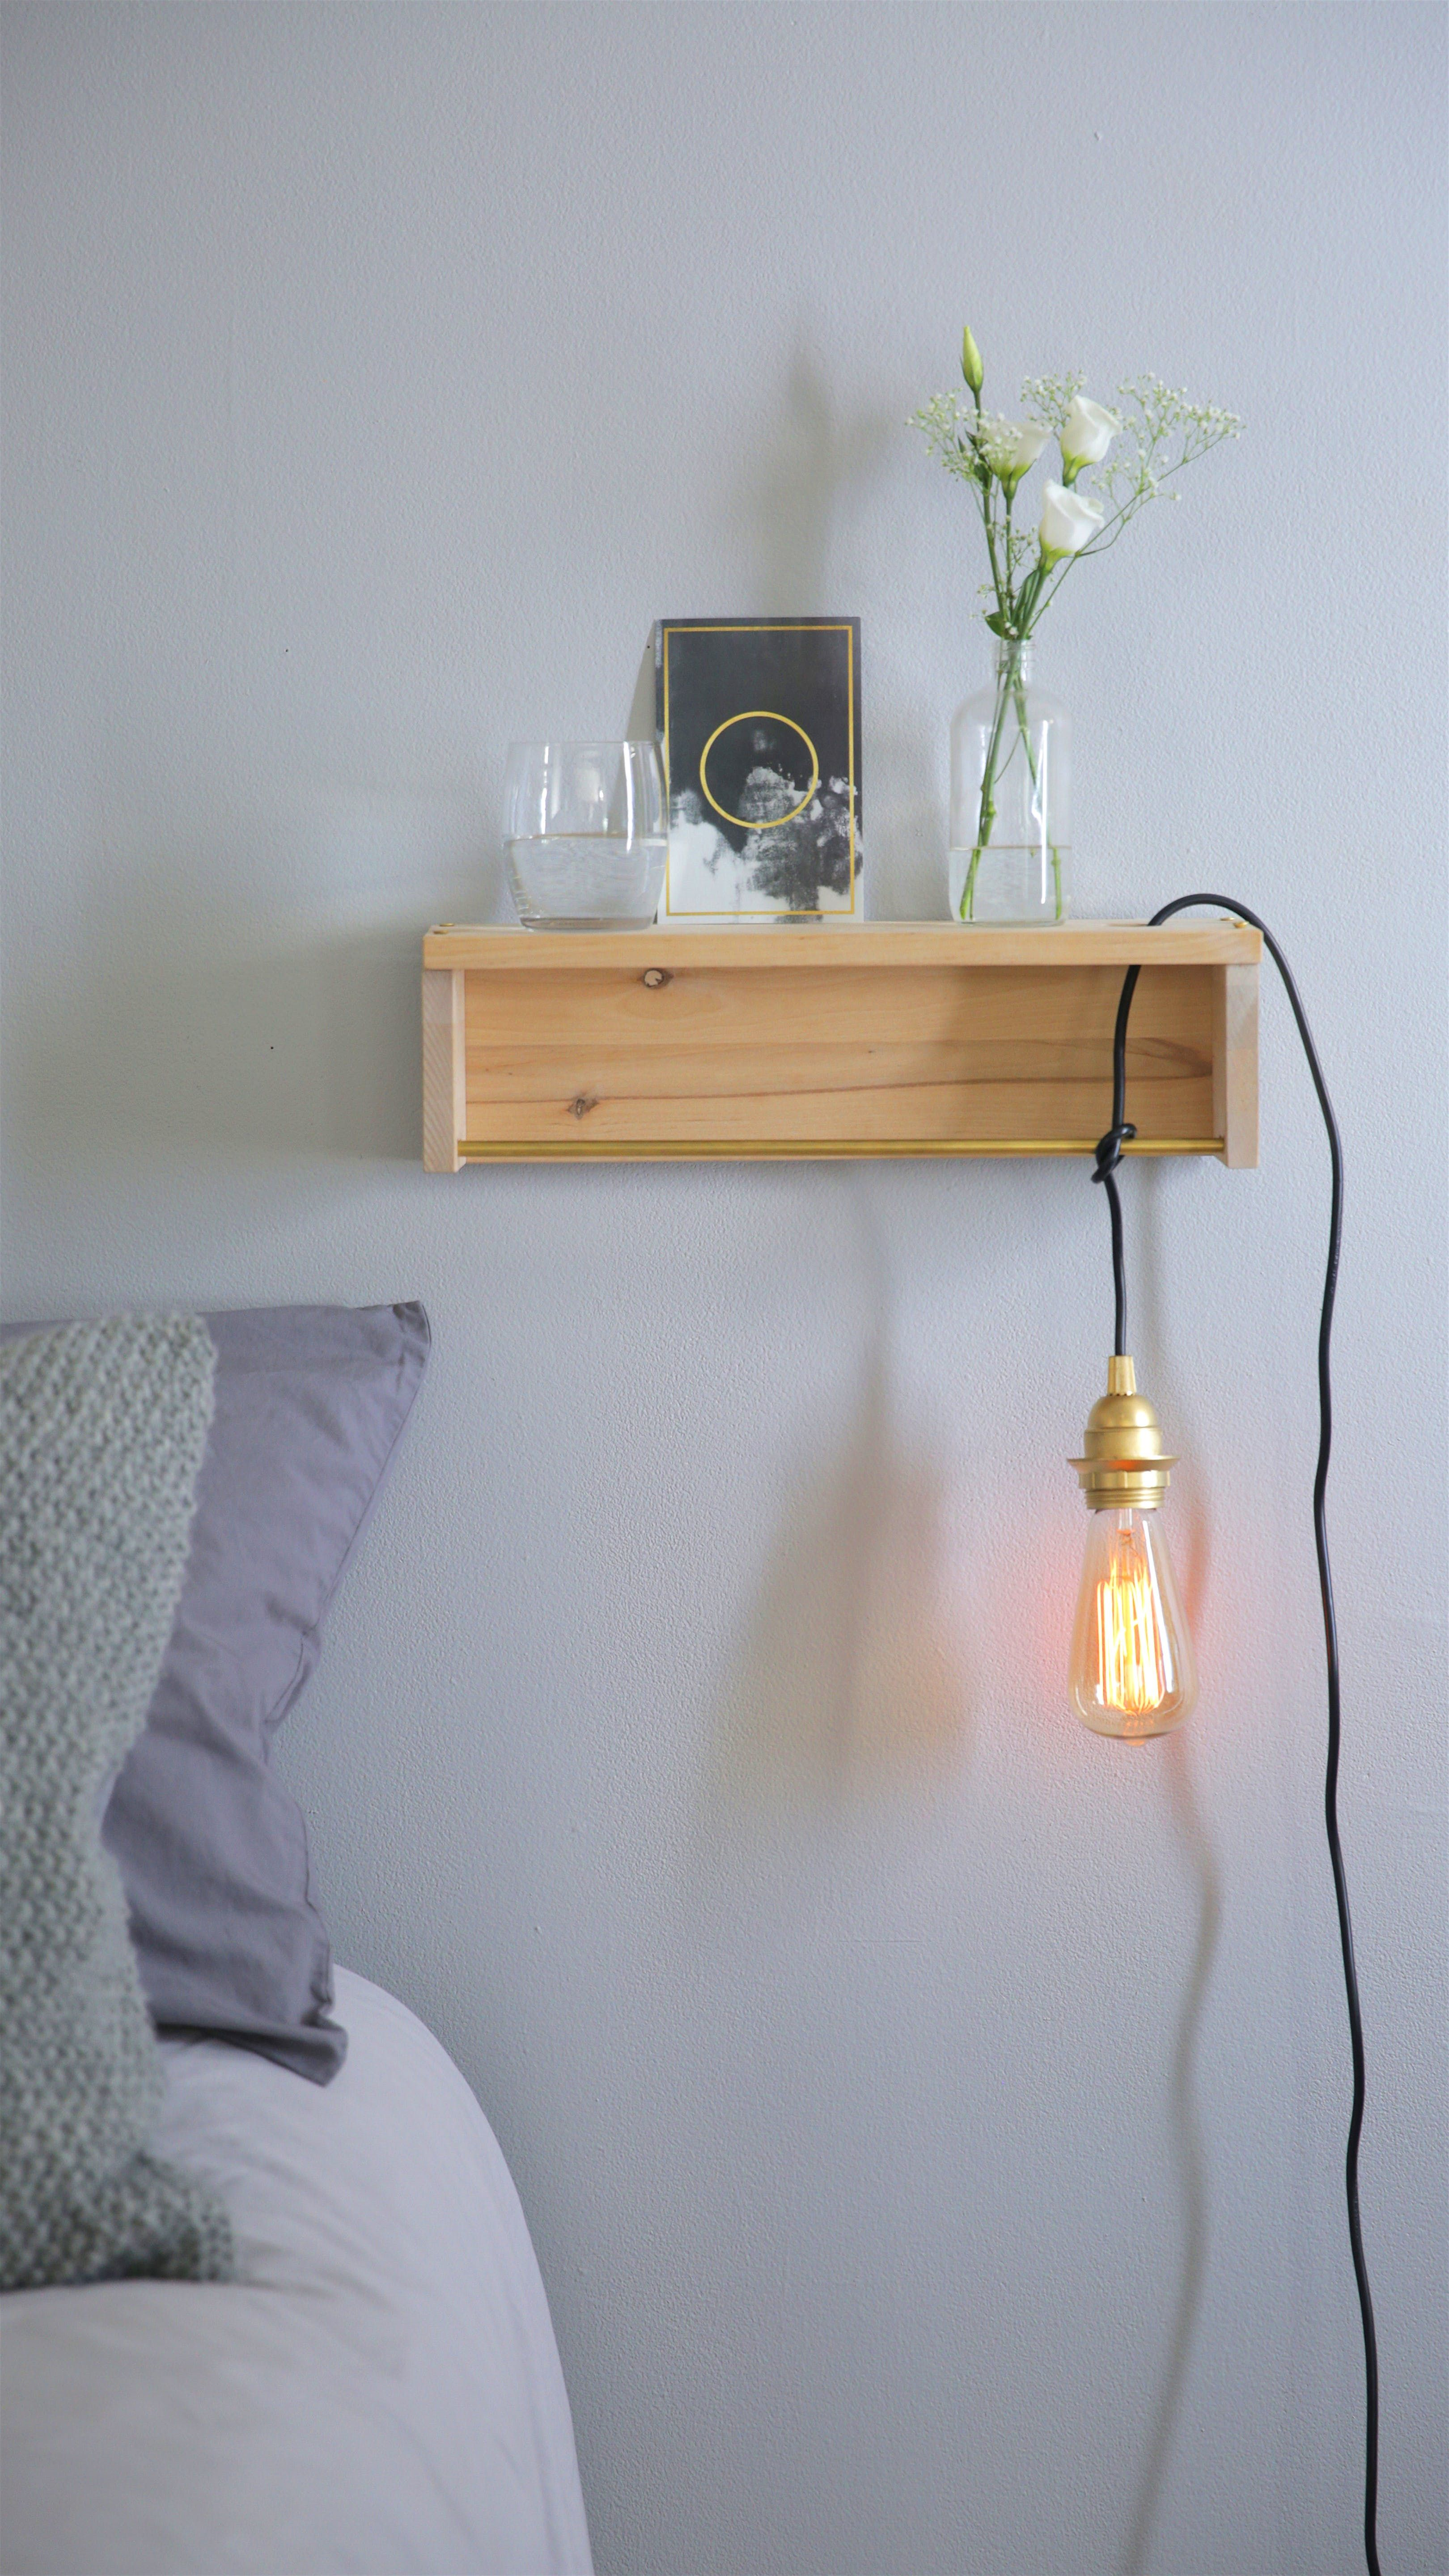 Small Space Ikea Hack Turn The Bekvam Spice Rack Into A